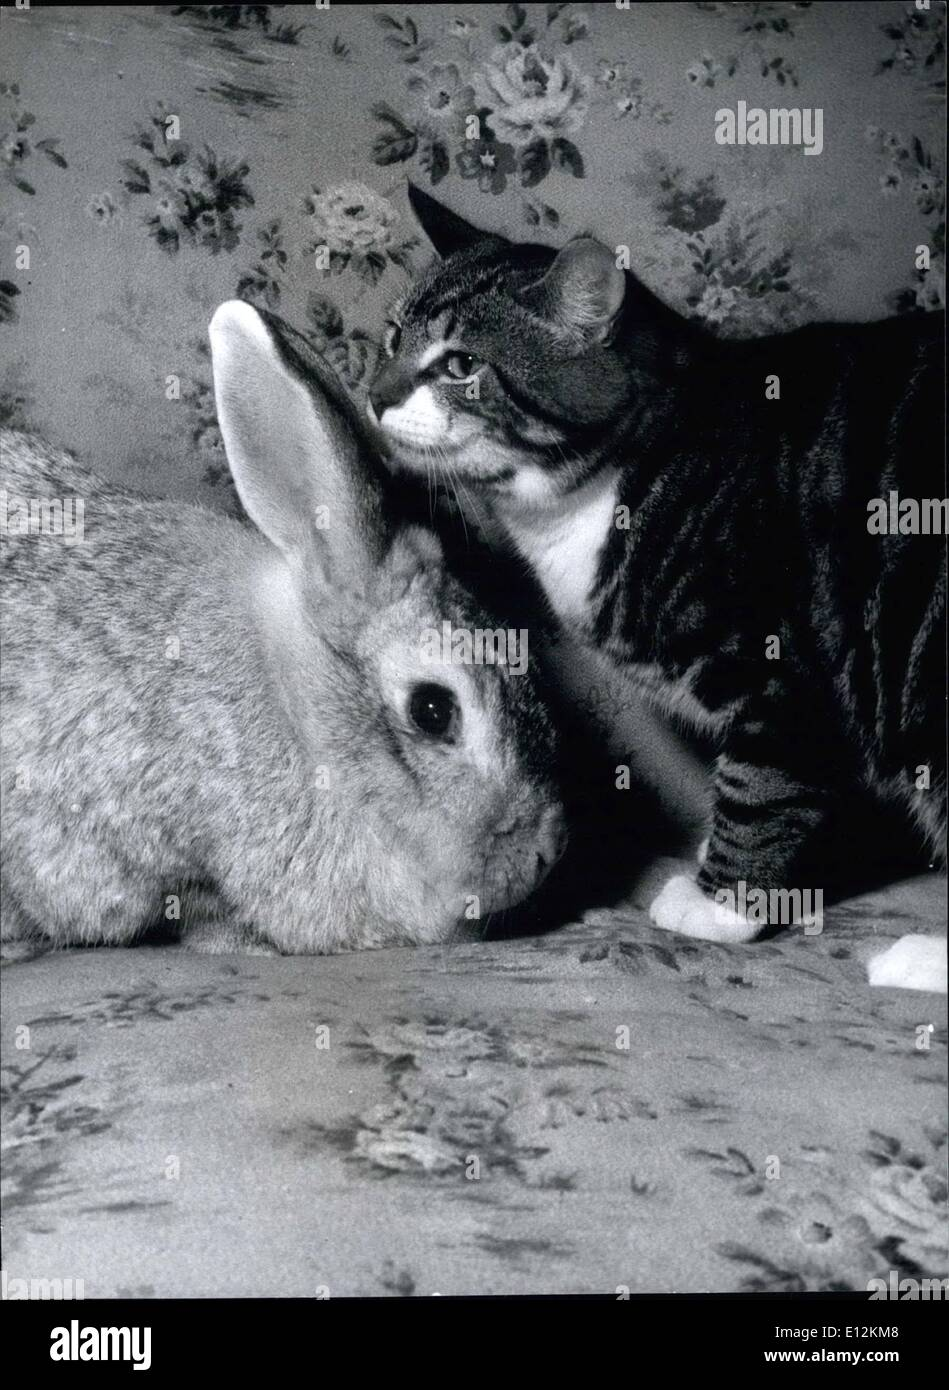 Feb. 24, 2012 - Duet from Buster and Joey the 12-year-old rabbit probably 'Getting to know you' - Stock Image